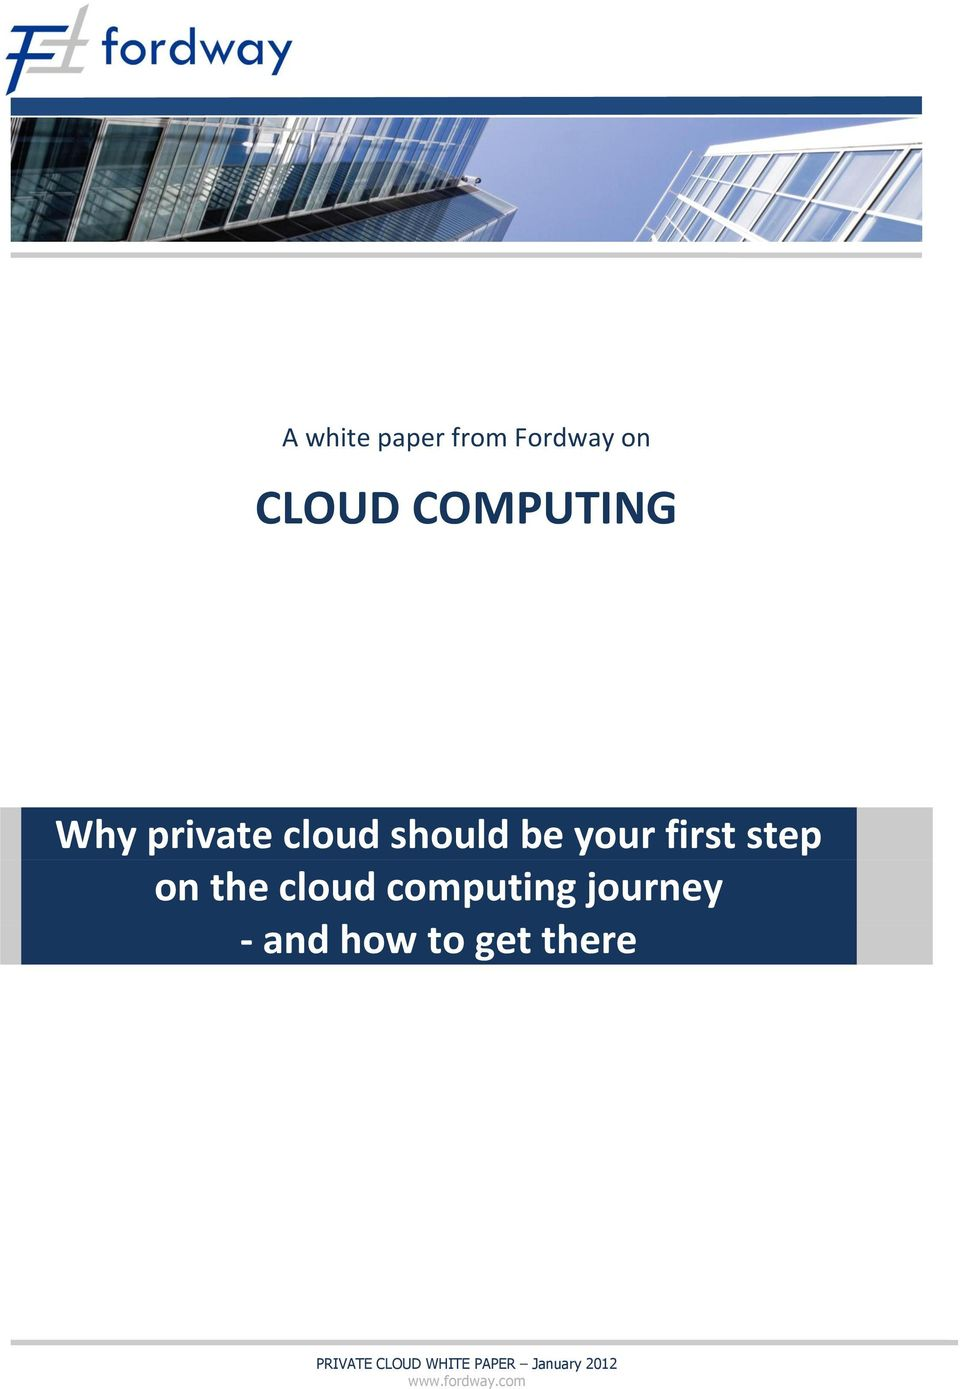 cloud computing journey - and how to get there